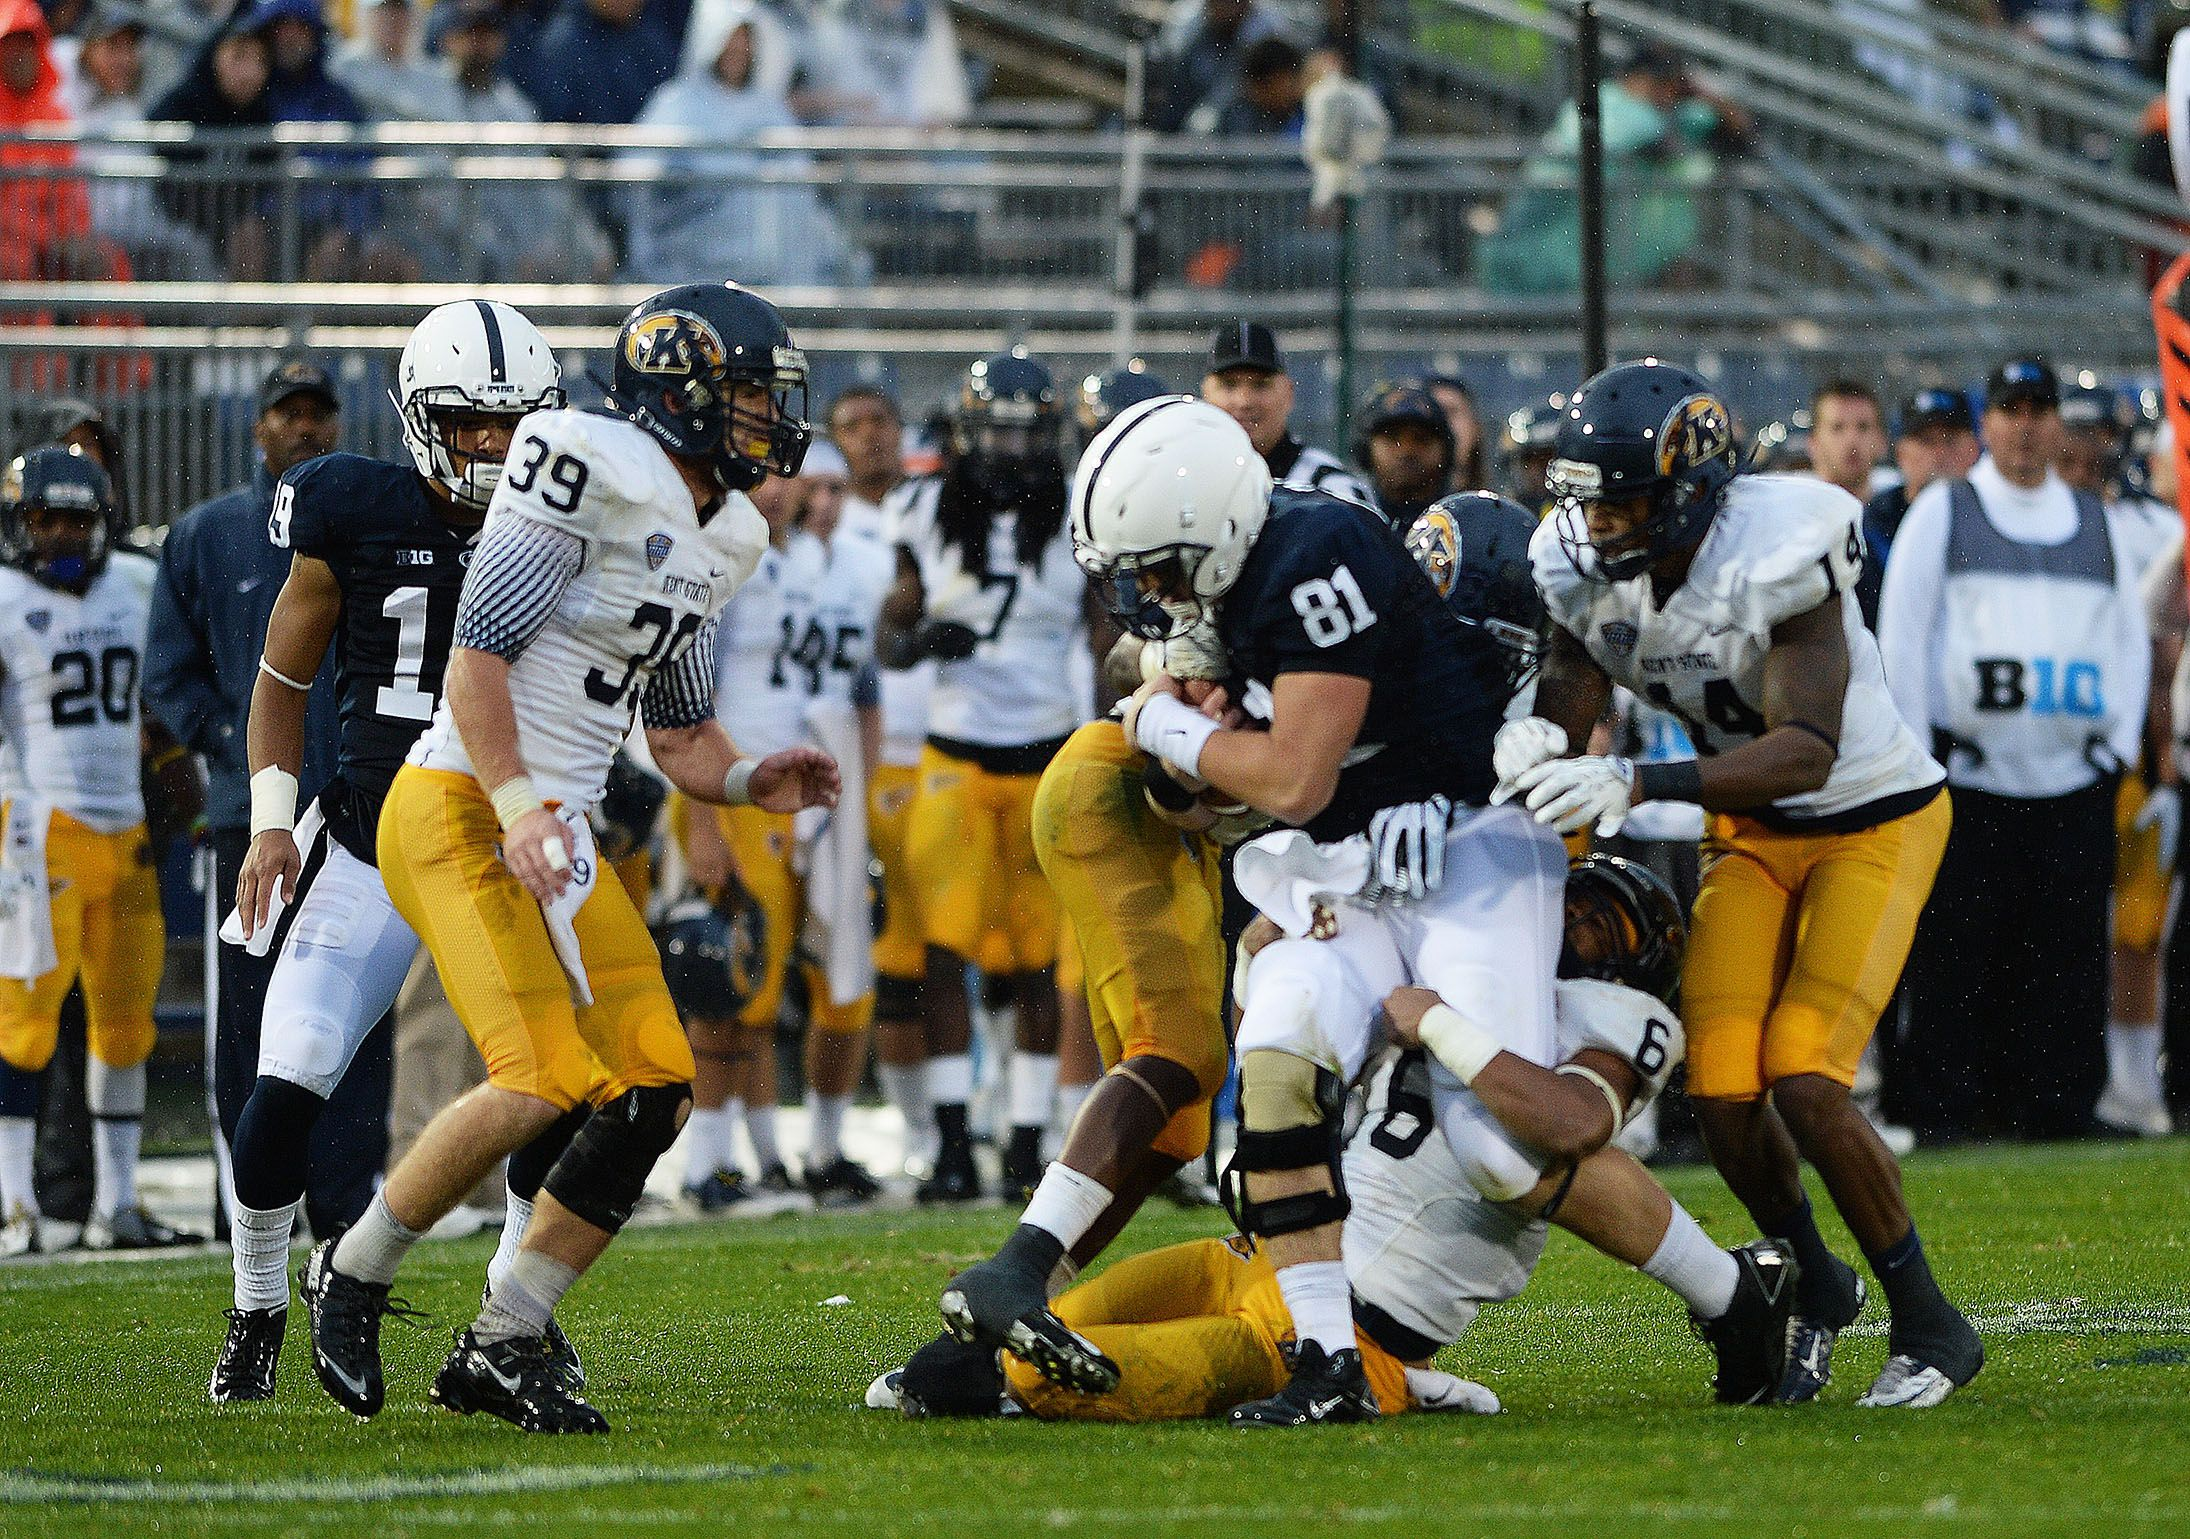 PENN STATE – FOOTBALL 2013 – FRESHMAN tight end Adam Breneman gallops for 27-yard gain, after catching pass from Christian Hackenberg.